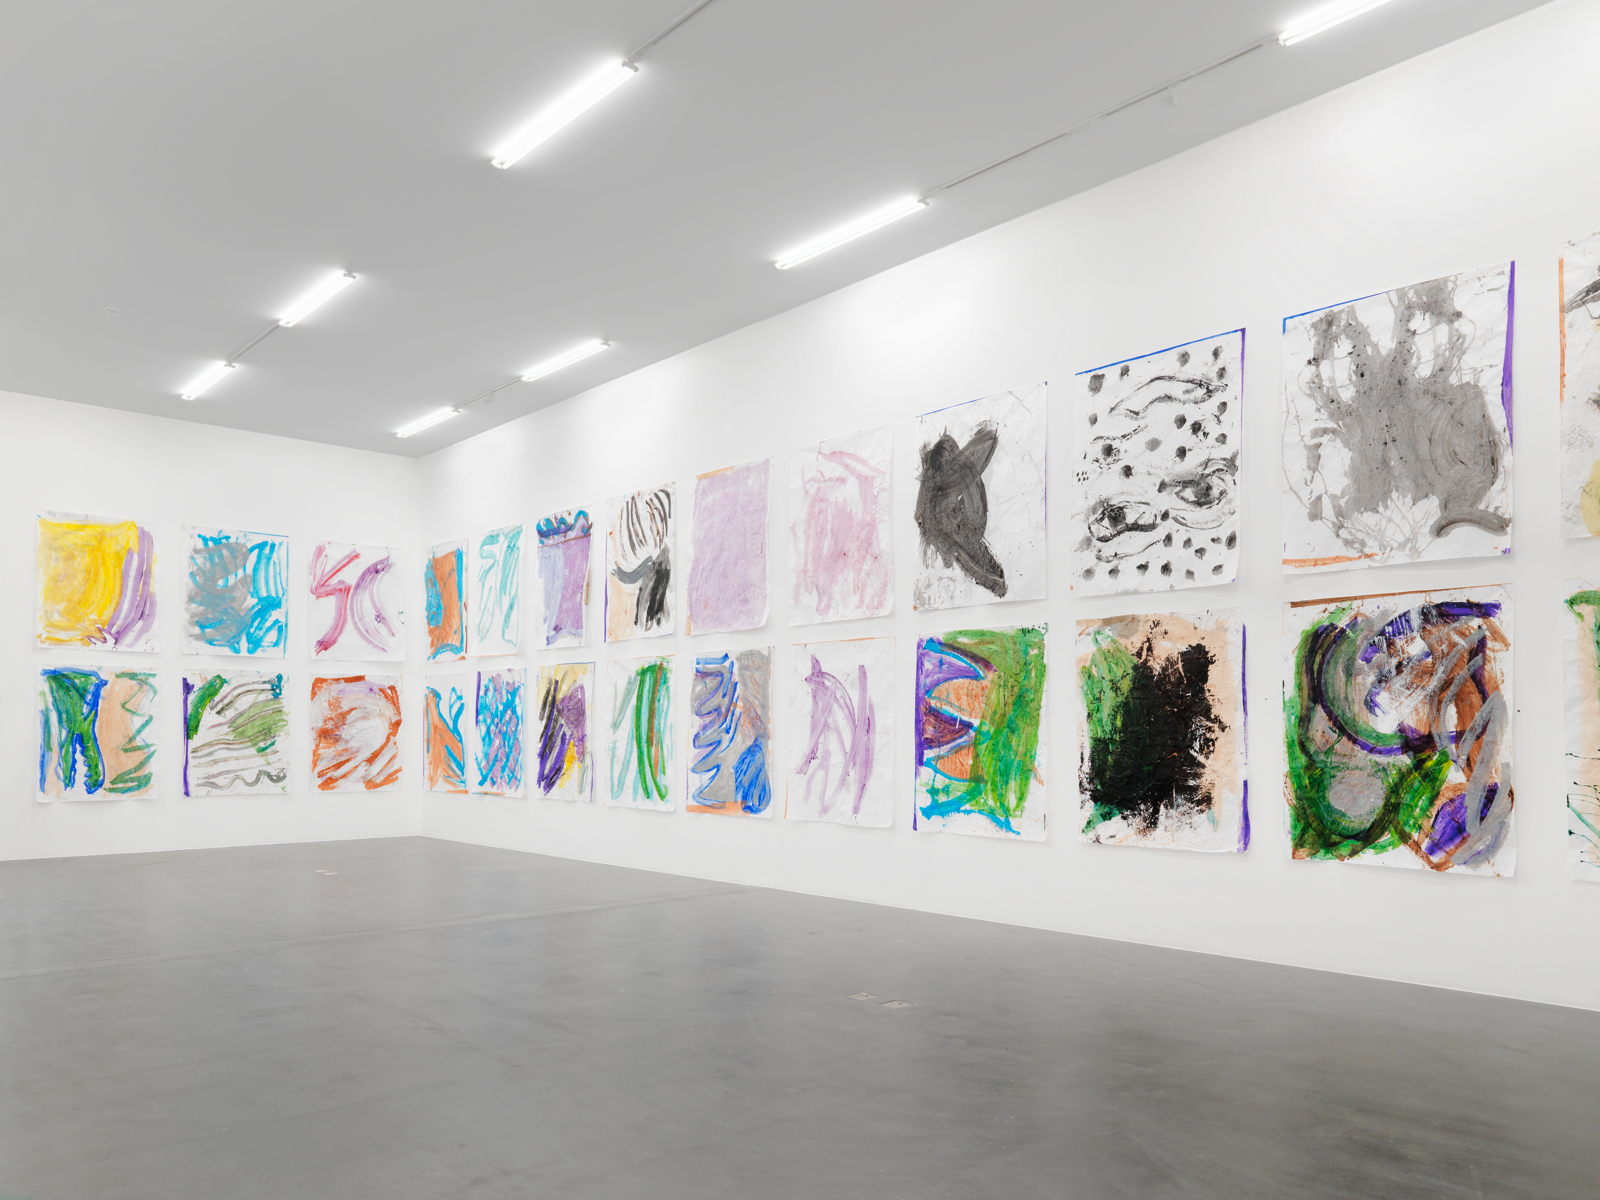 Josh Smith / Exhibition view, Kunsthalle Zürich / 2010